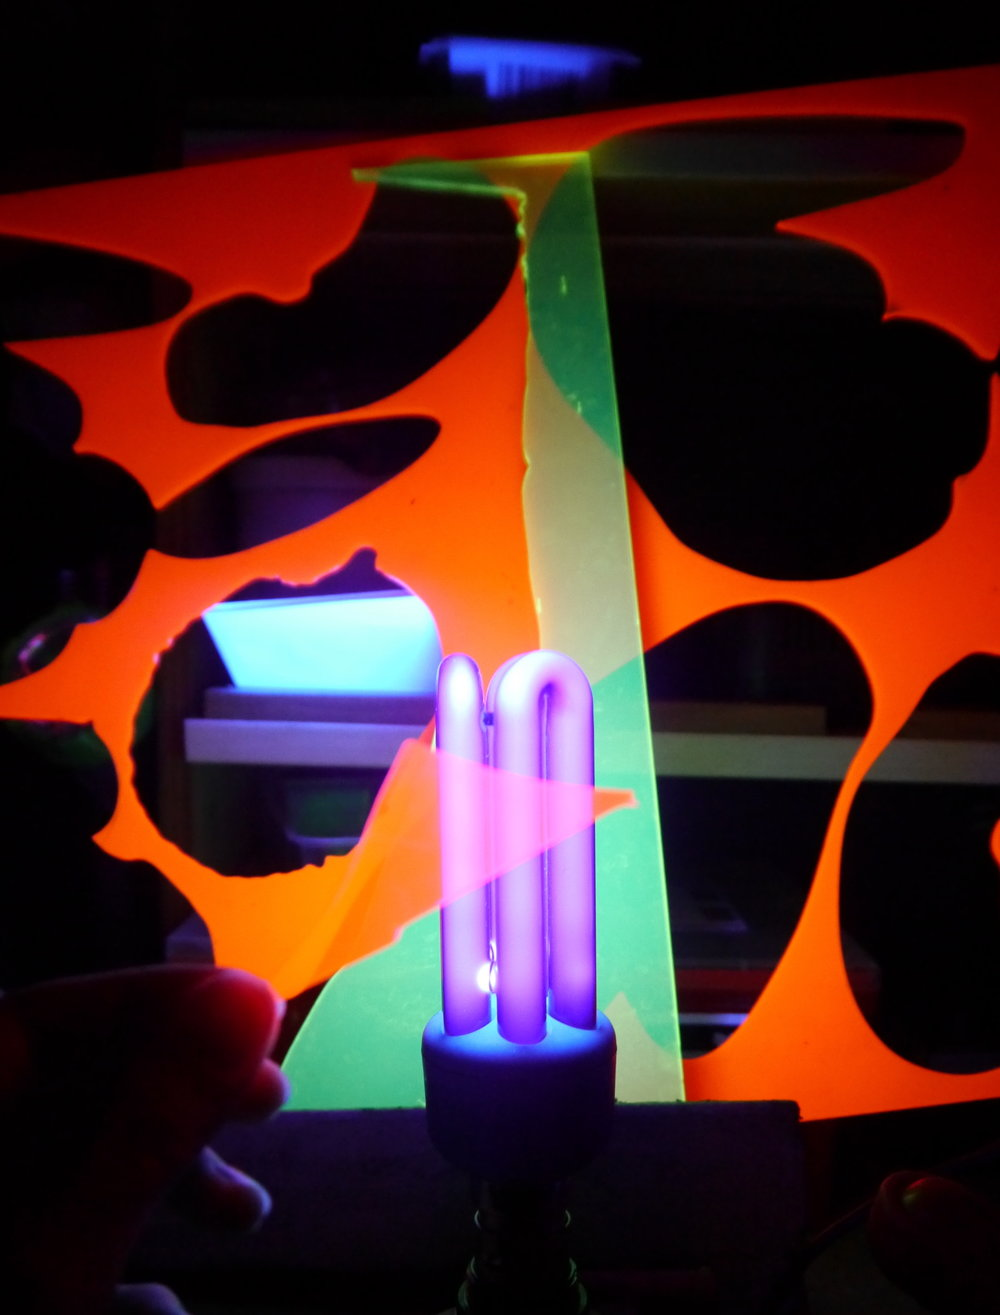 Arielle Walker Liam Mullins Perspex Blacklight Test.JPG